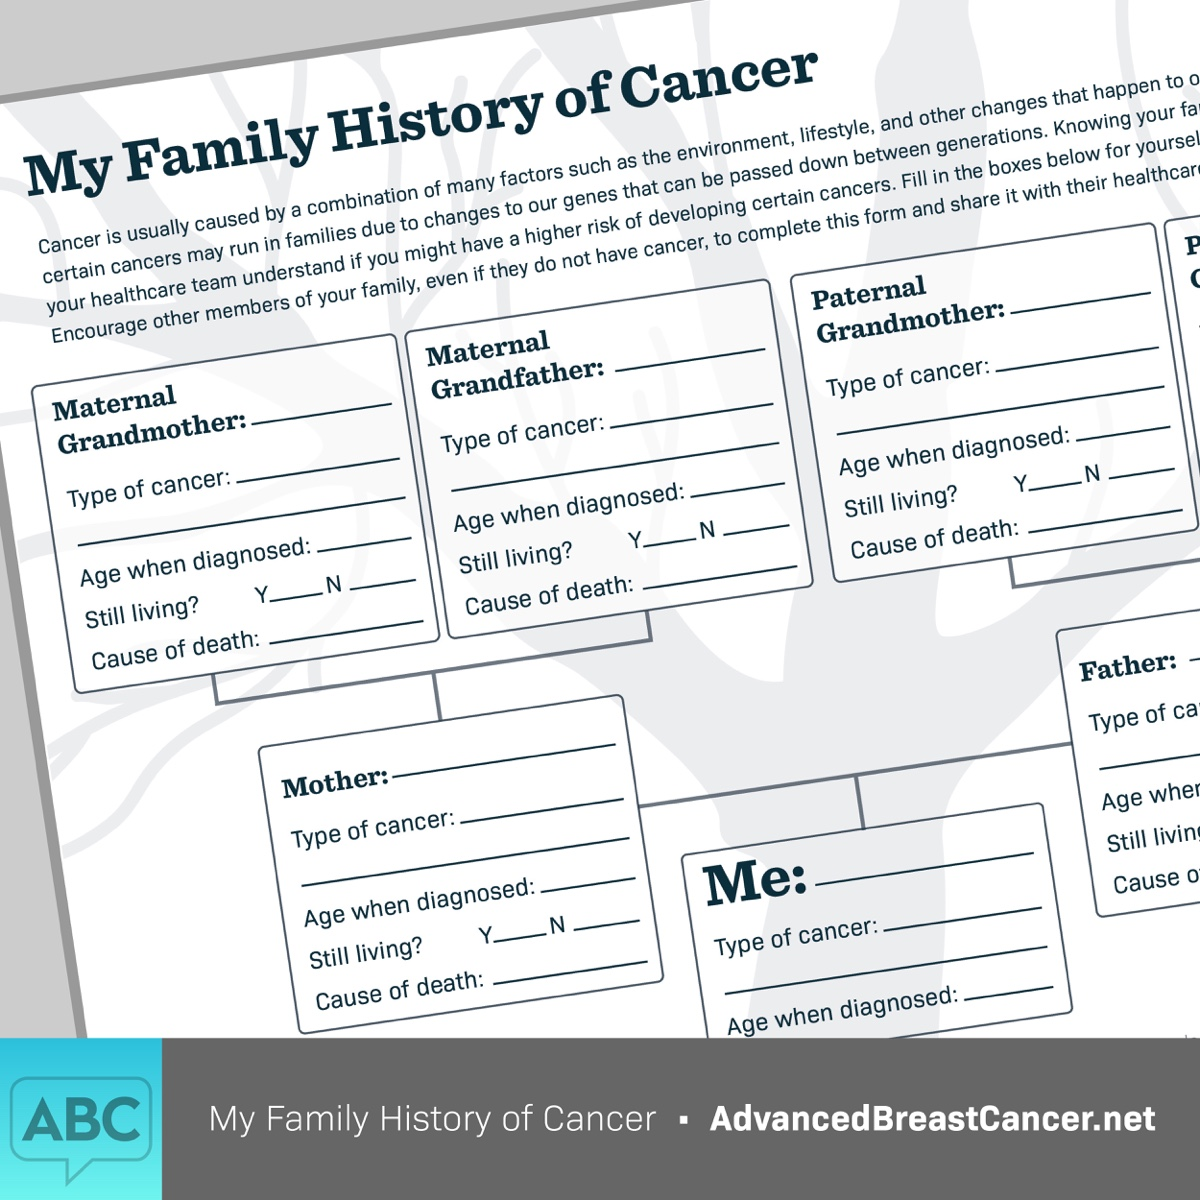 Family History of Cancer Sheet